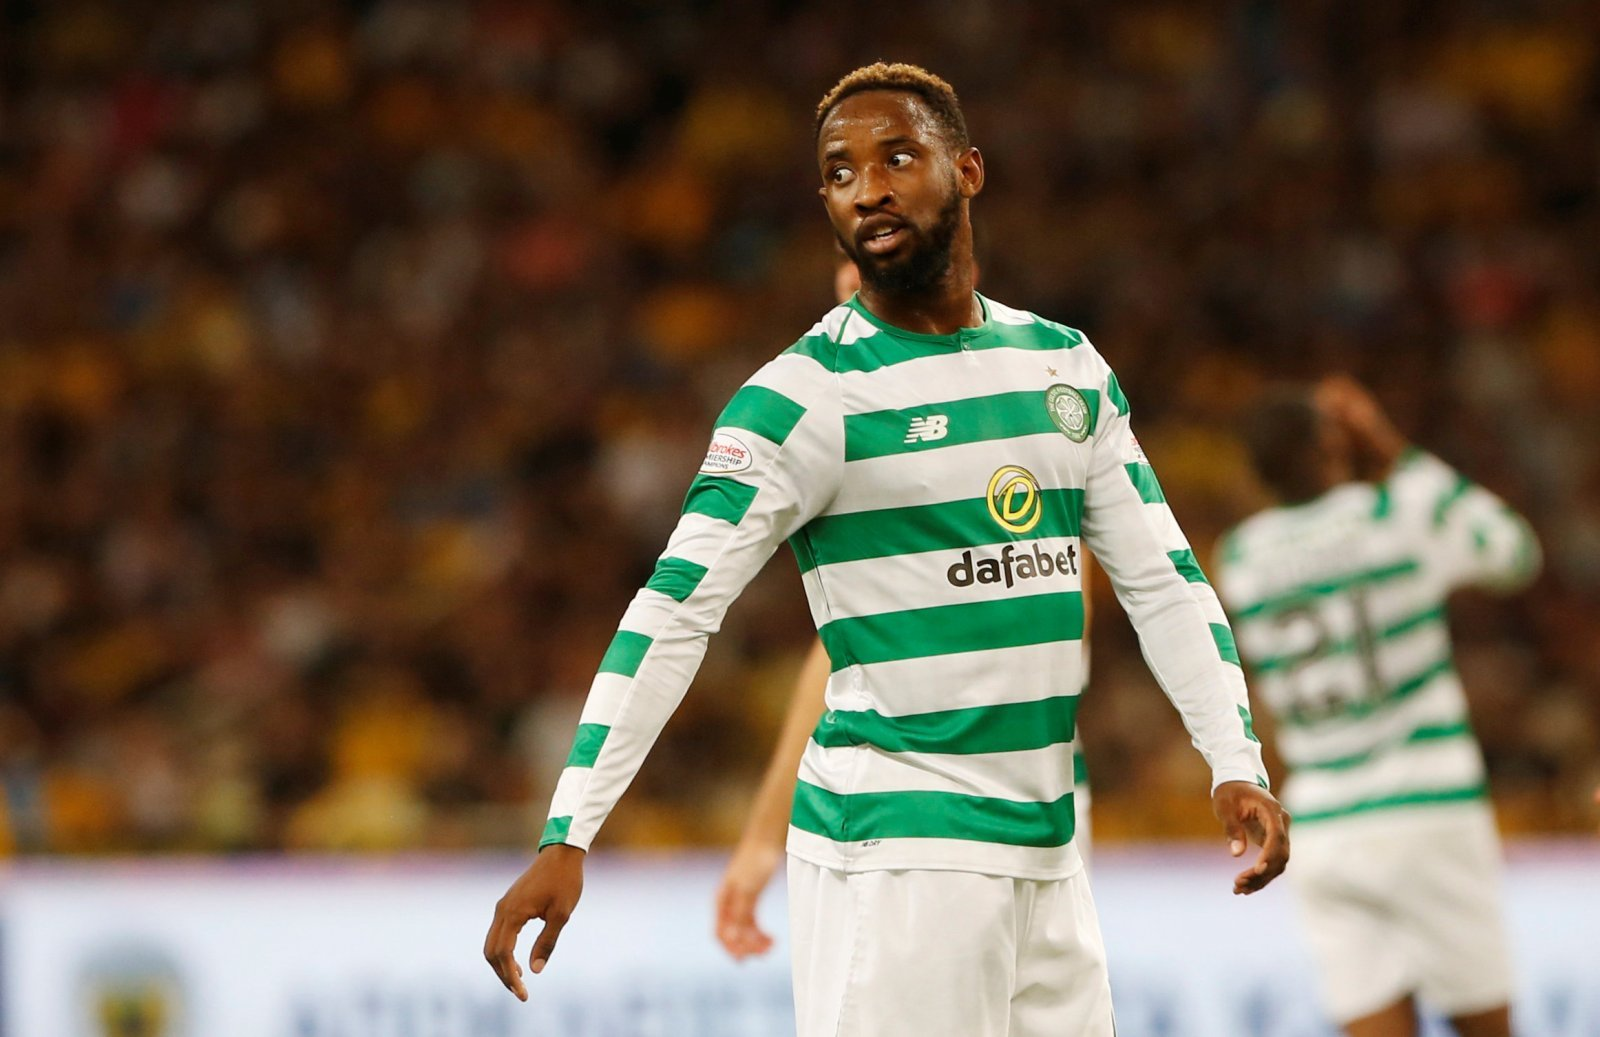 Gordon Strachan raises good points in his assessment of Celtic's decision to sell Dembele